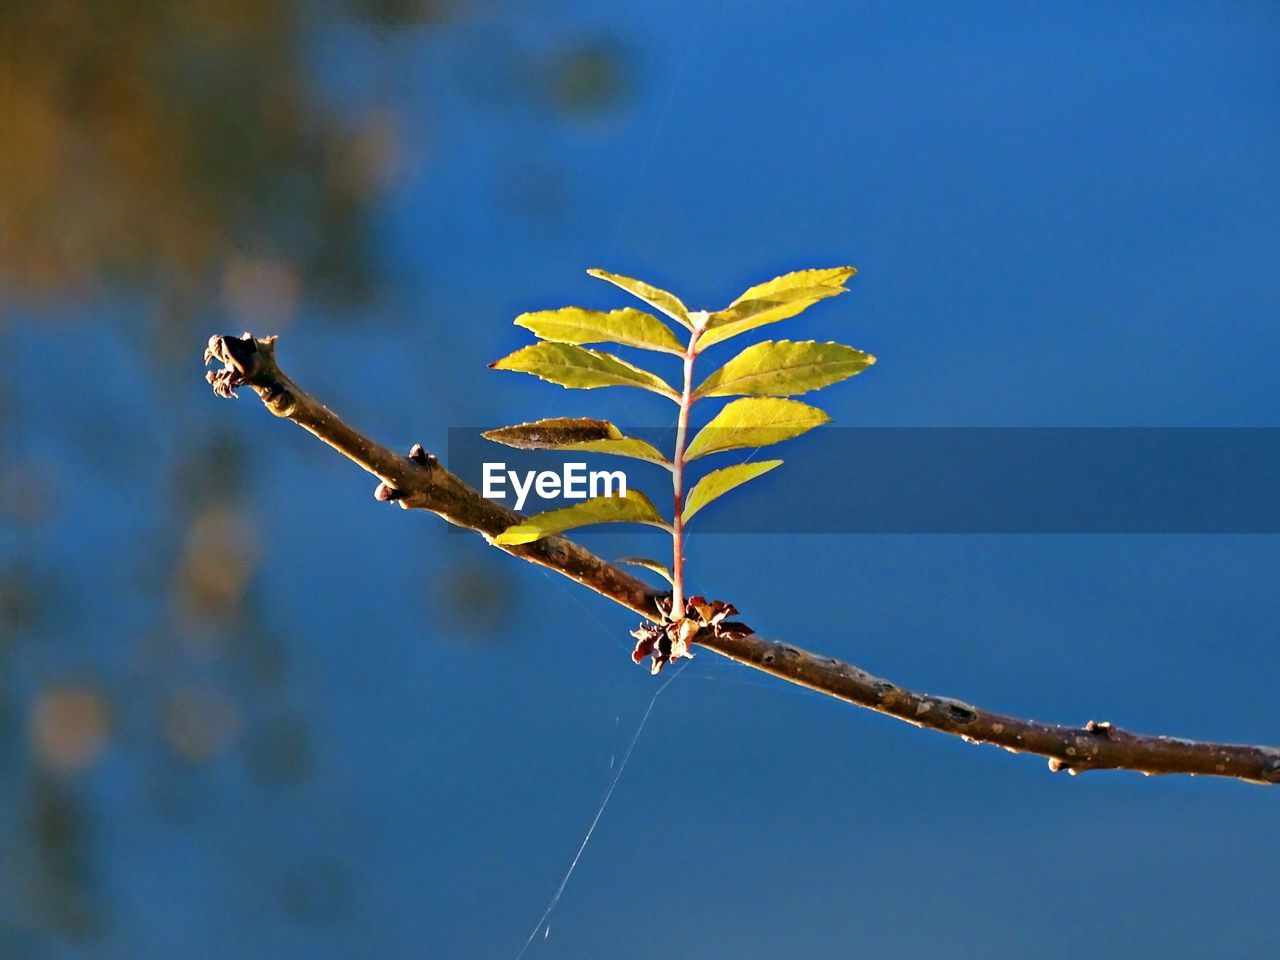 nature, day, outdoors, leaf, no people, low angle view, blue, autumn, close-up, beauty in nature, sky, animal themes